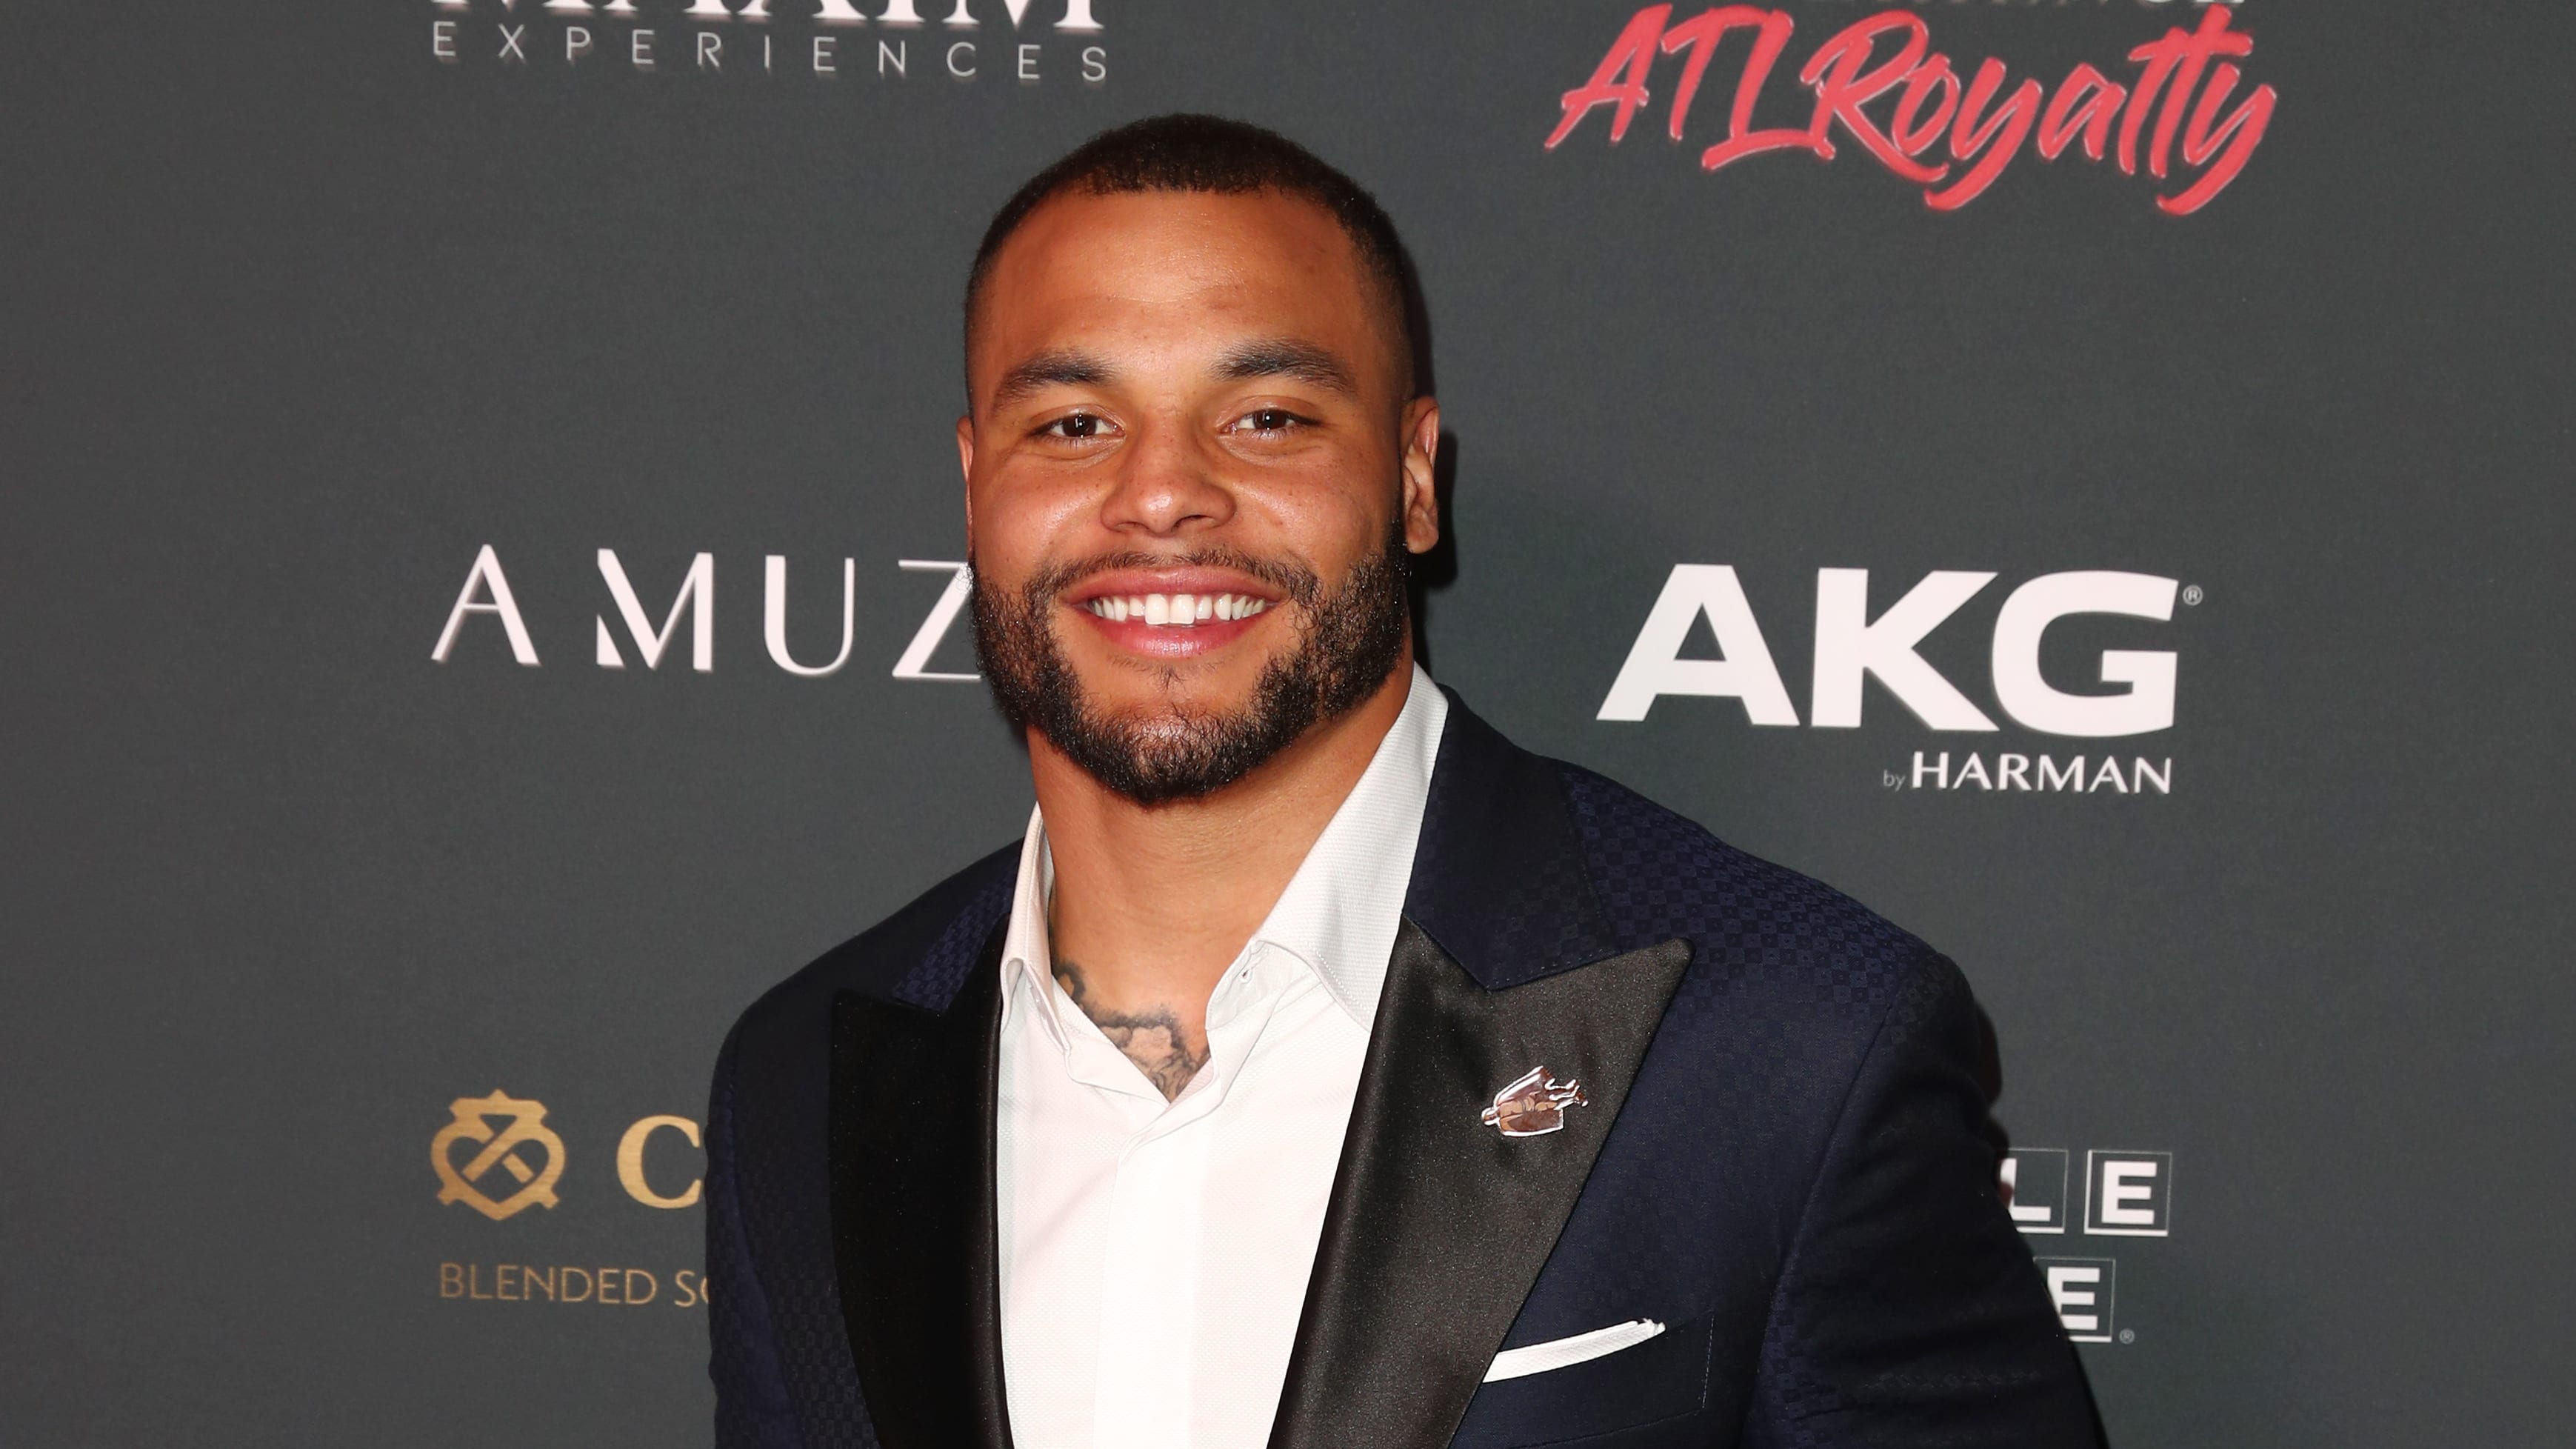 ATLANTA, GEORGIA - FEBRUARY 02: Dak Prescott attends The Maxim Big Game Experience at The Fairmont on February 02, 2019 in Atlanta, Georgia. (Photo by Joe Scarnici/Getty Images for Maxim)